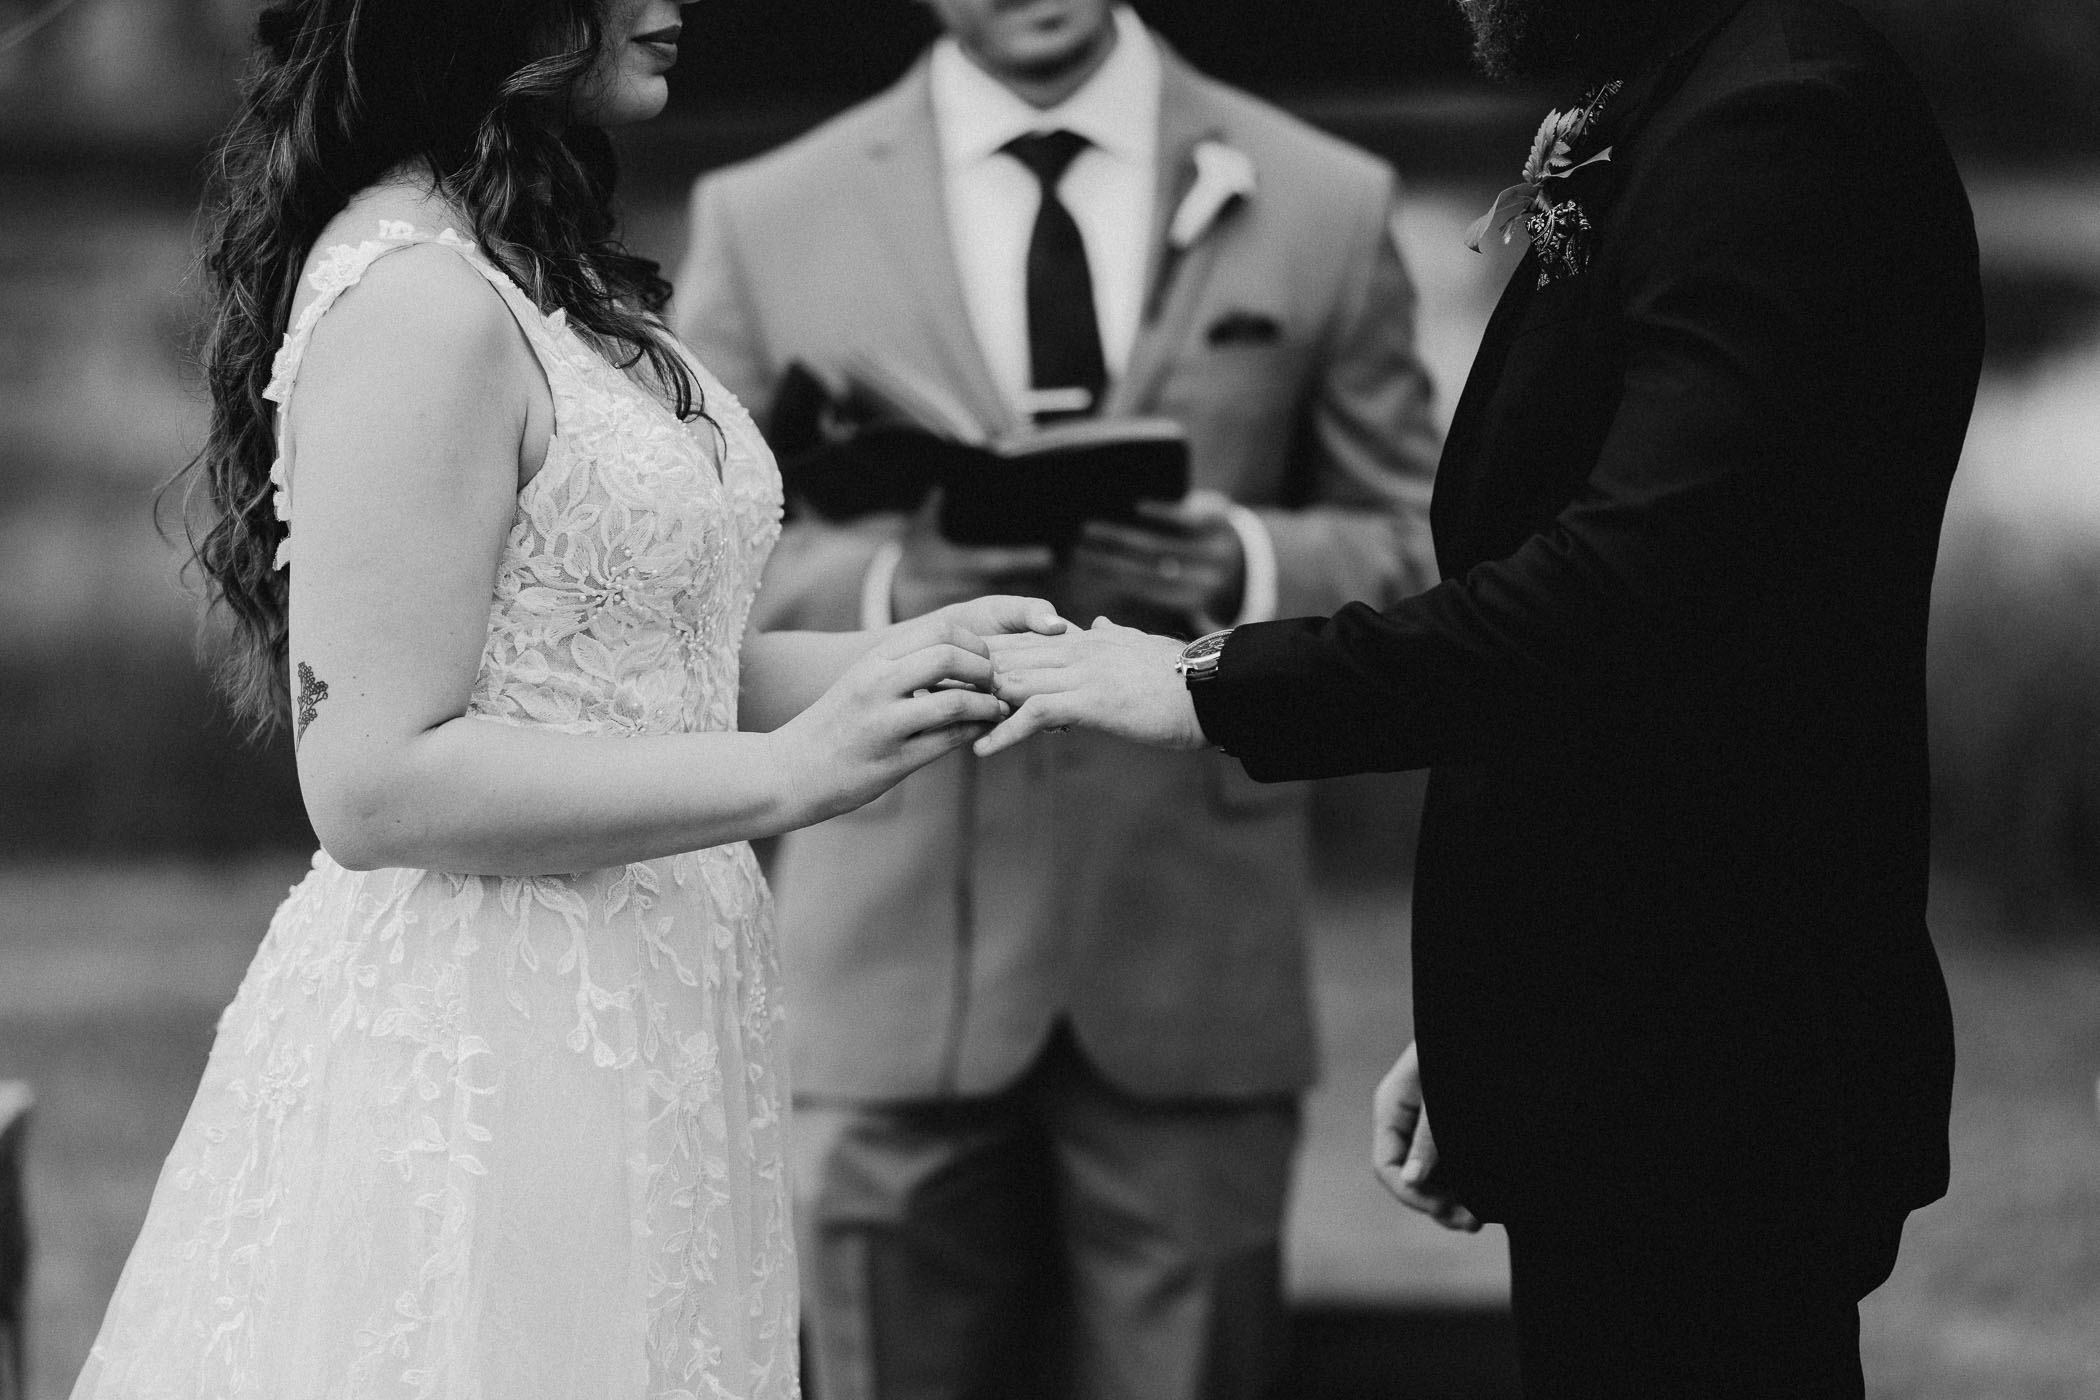 black and white of bride and groom exchanging wedding rings in DFW during pandemic wedding ceremony